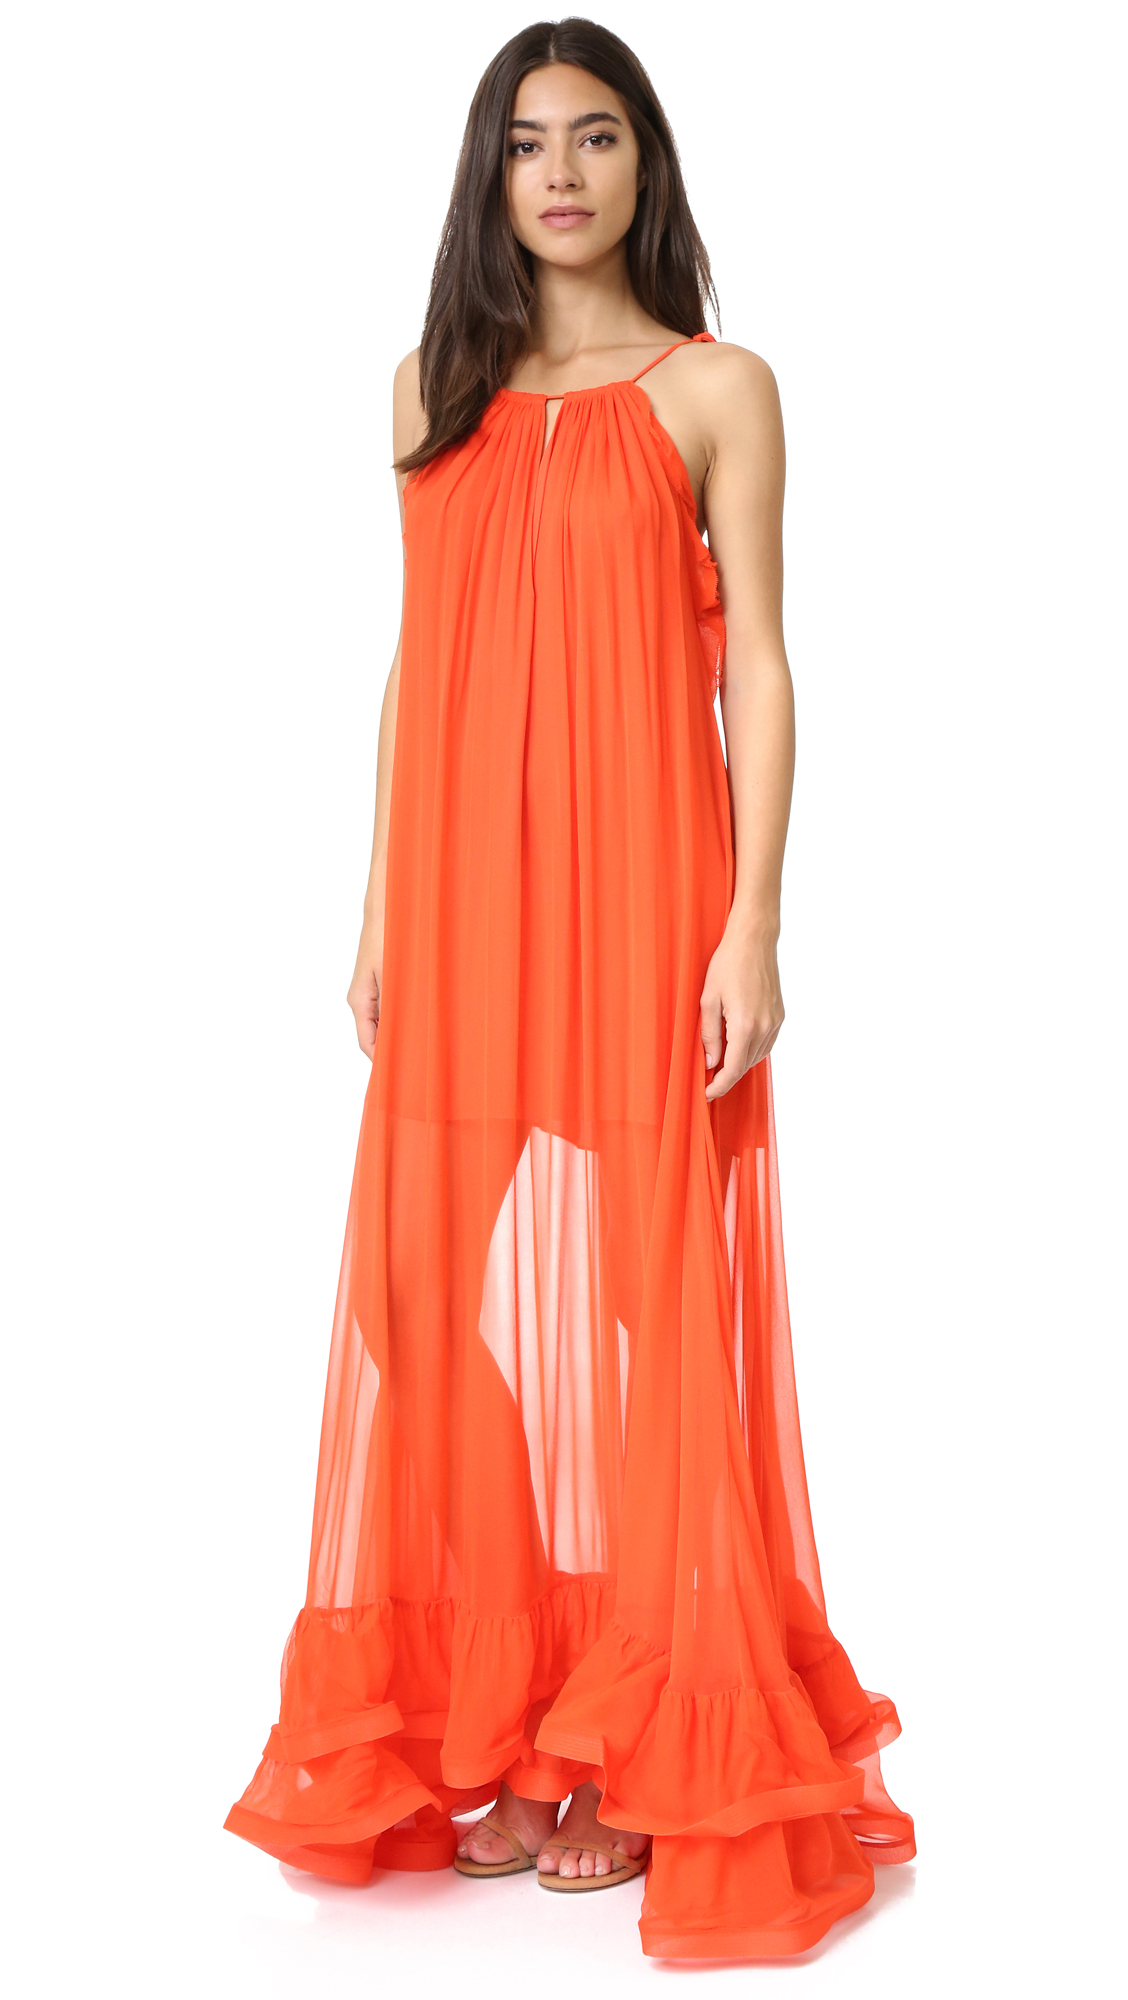 Alexis $613 from $875